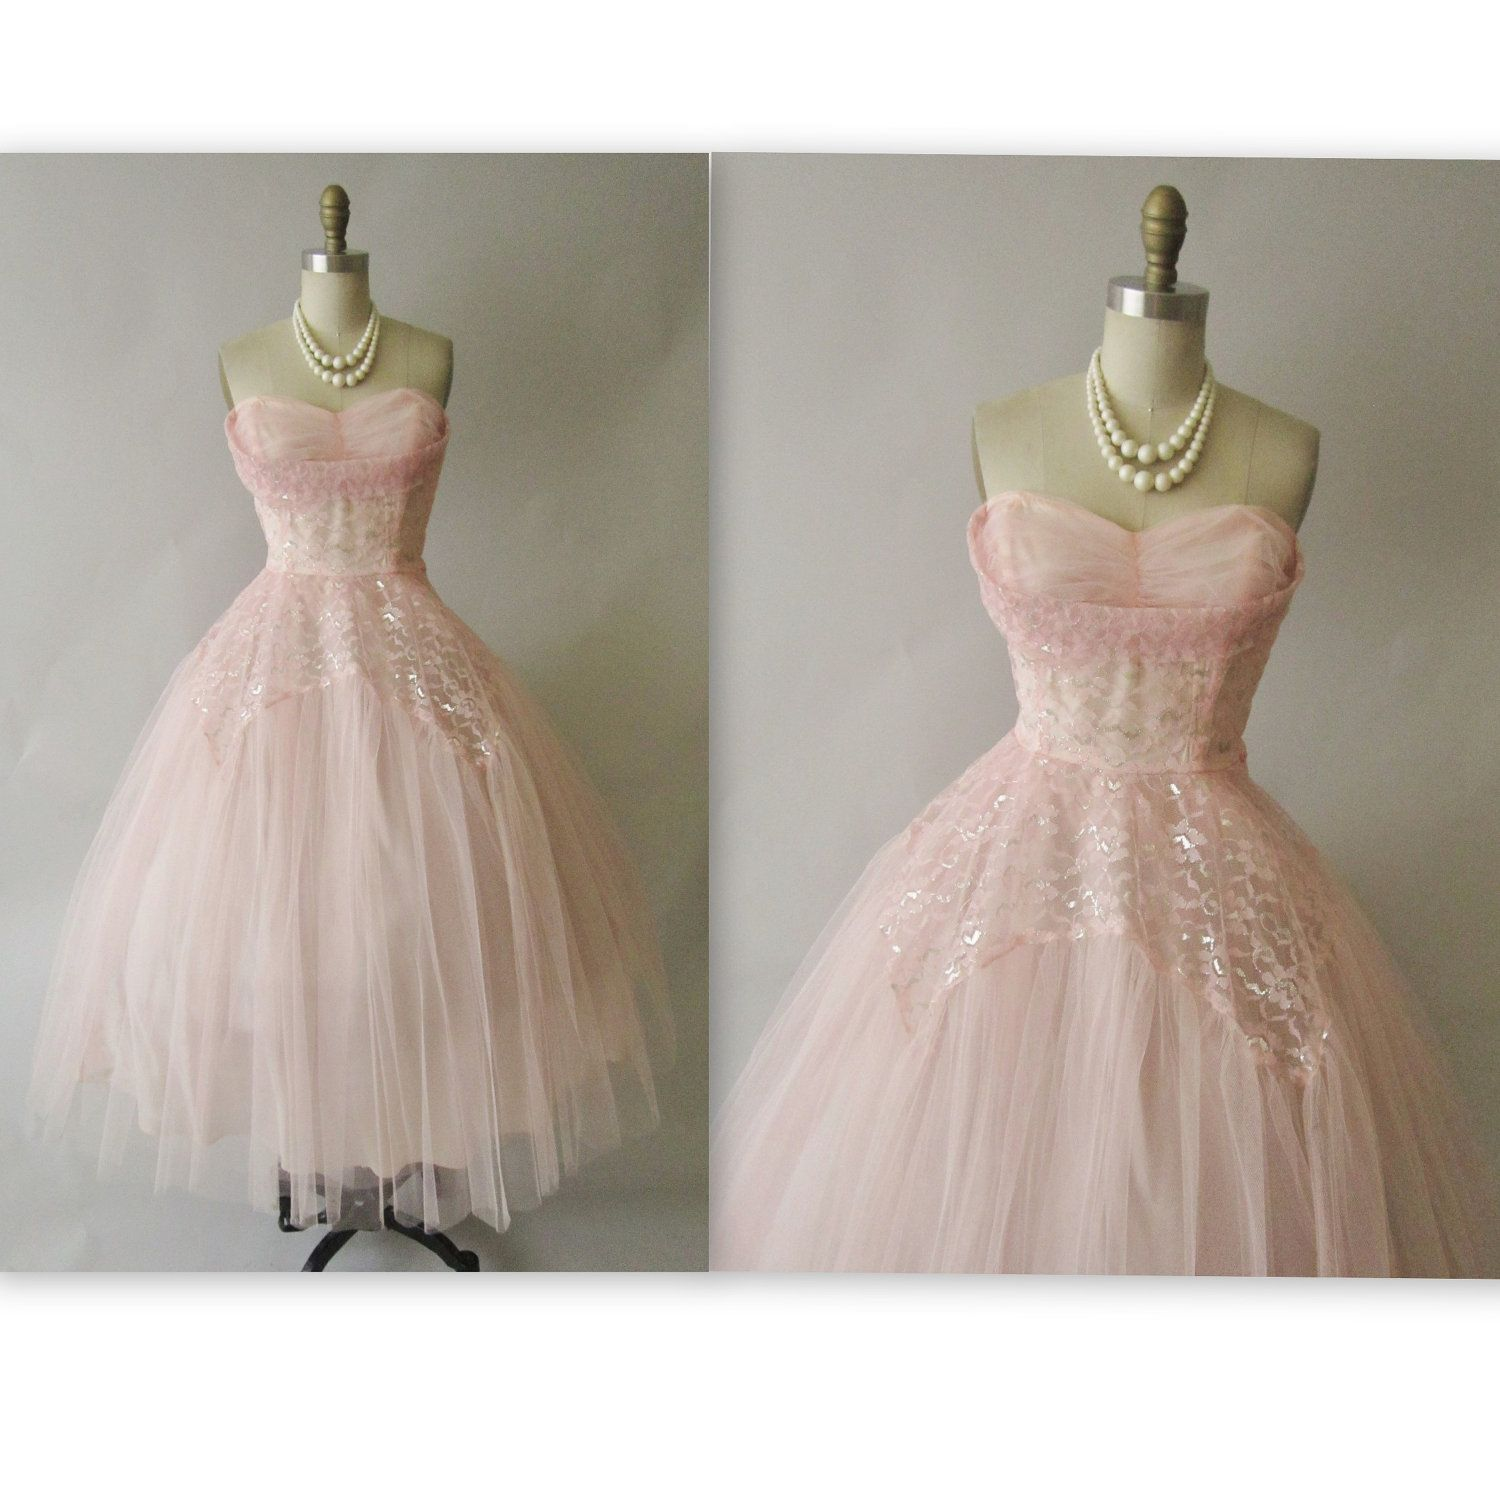 50's Prom Dress // Vintage 1950's Strapless Pink Silver Lace Tulle ...